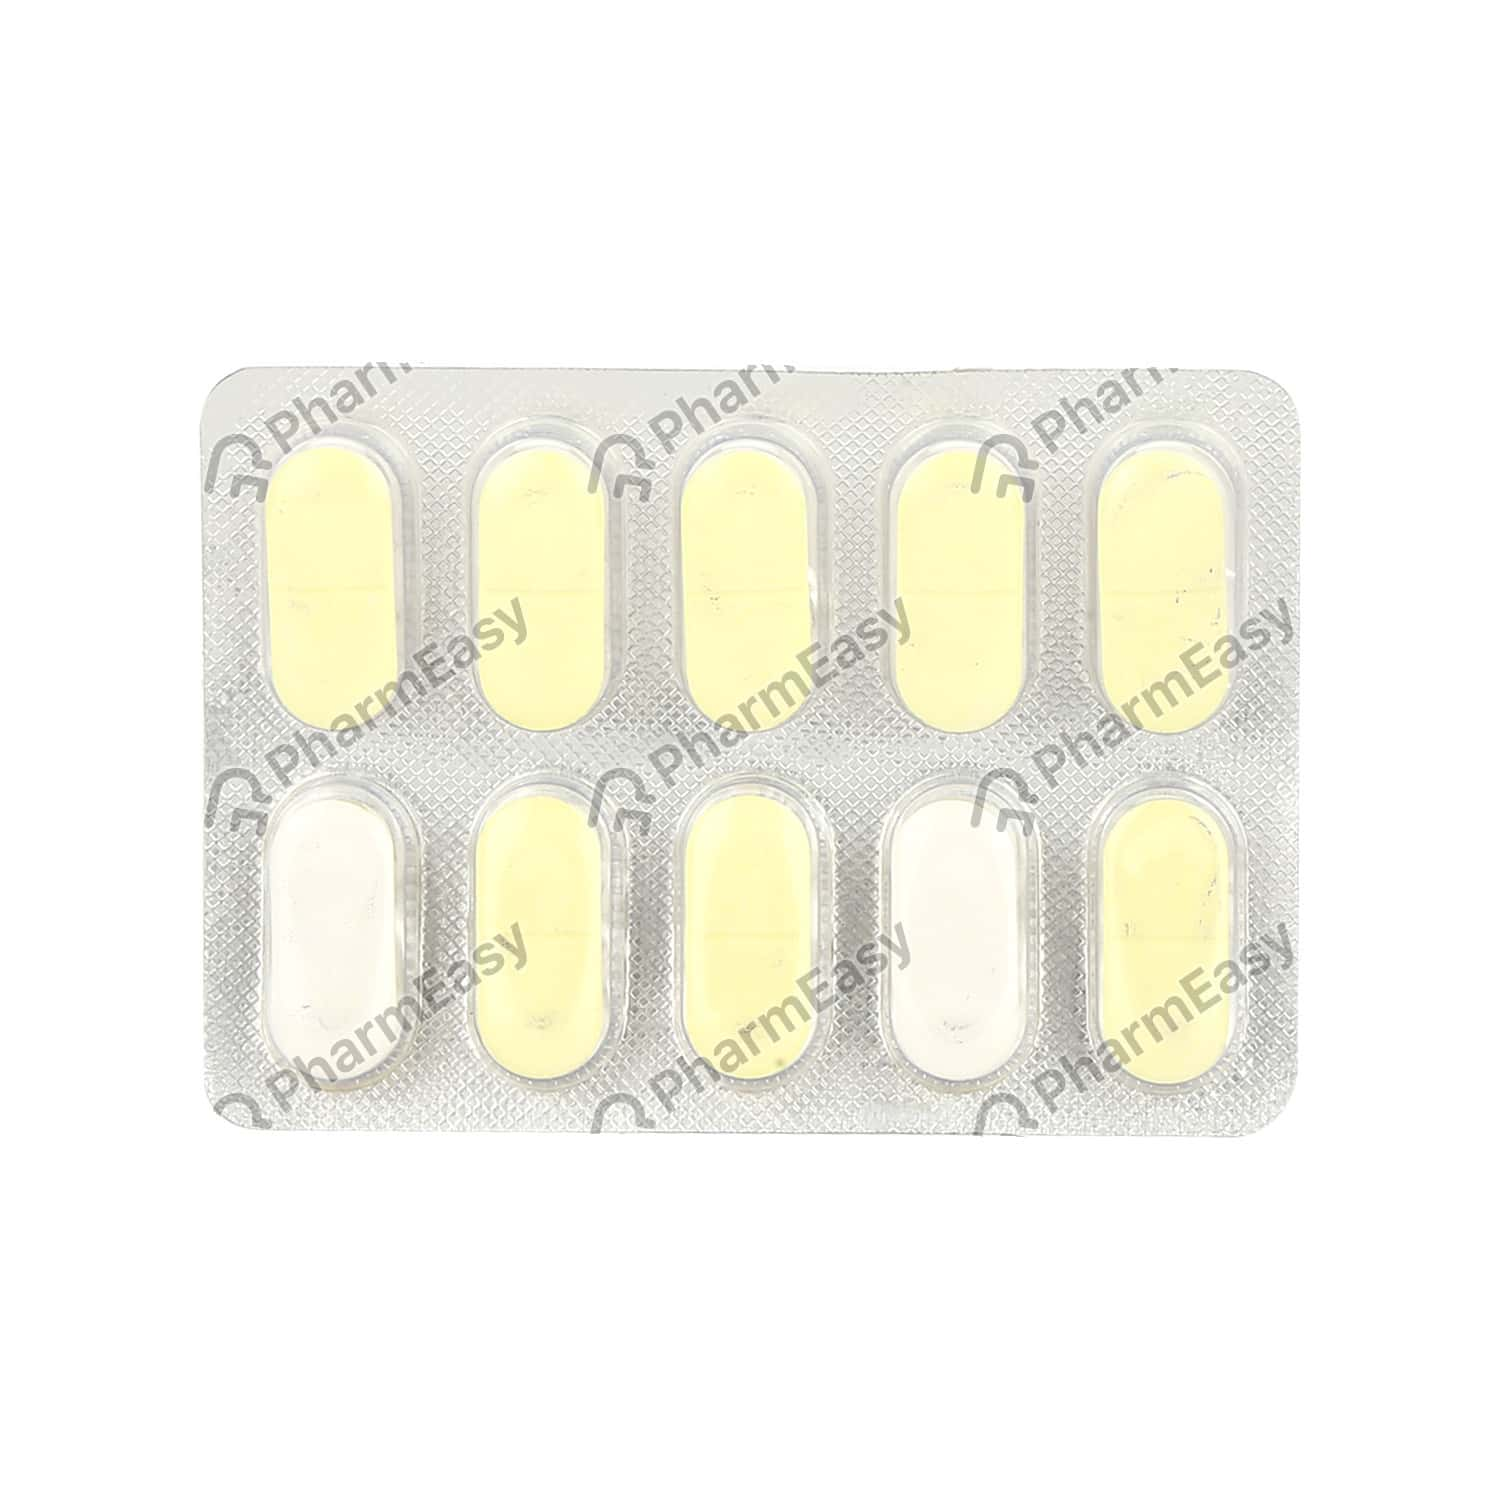 Duopil Hs 1/850mg Tablet